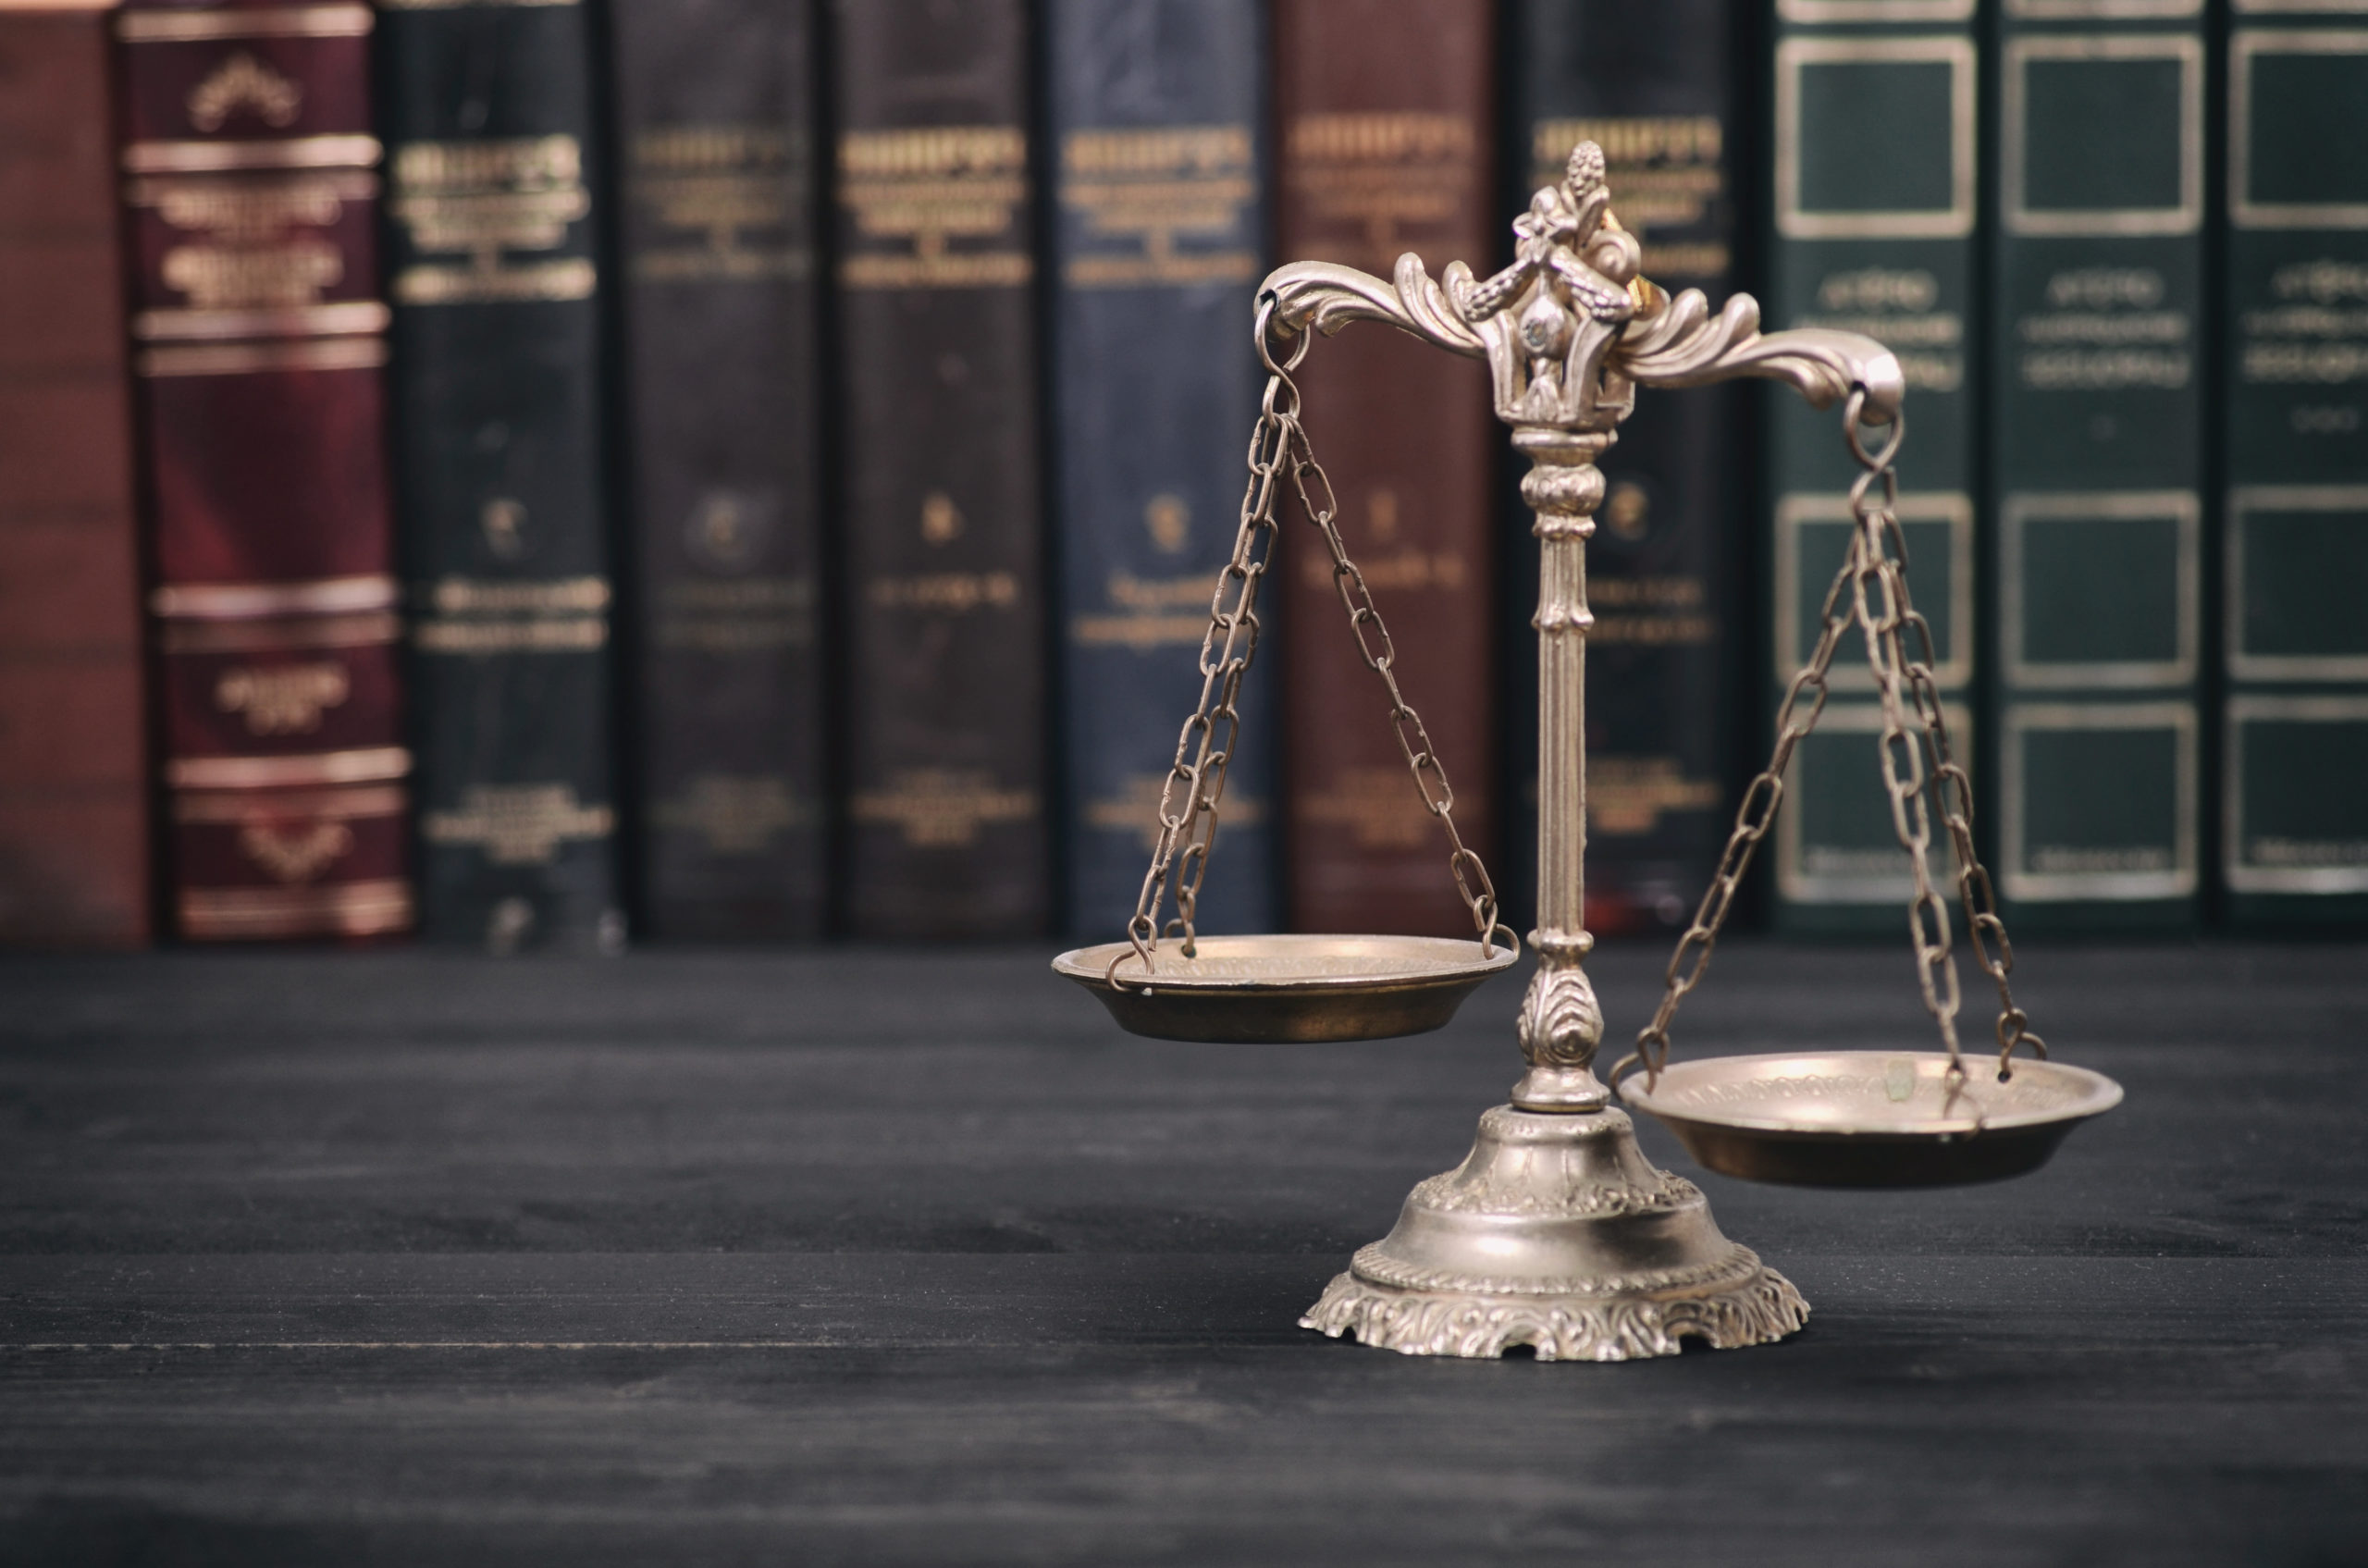 Closeup photograph of a scales of justice in a light gold sitting on a black wooden surface, with hardbound legal reference books with gold lettering in the background.